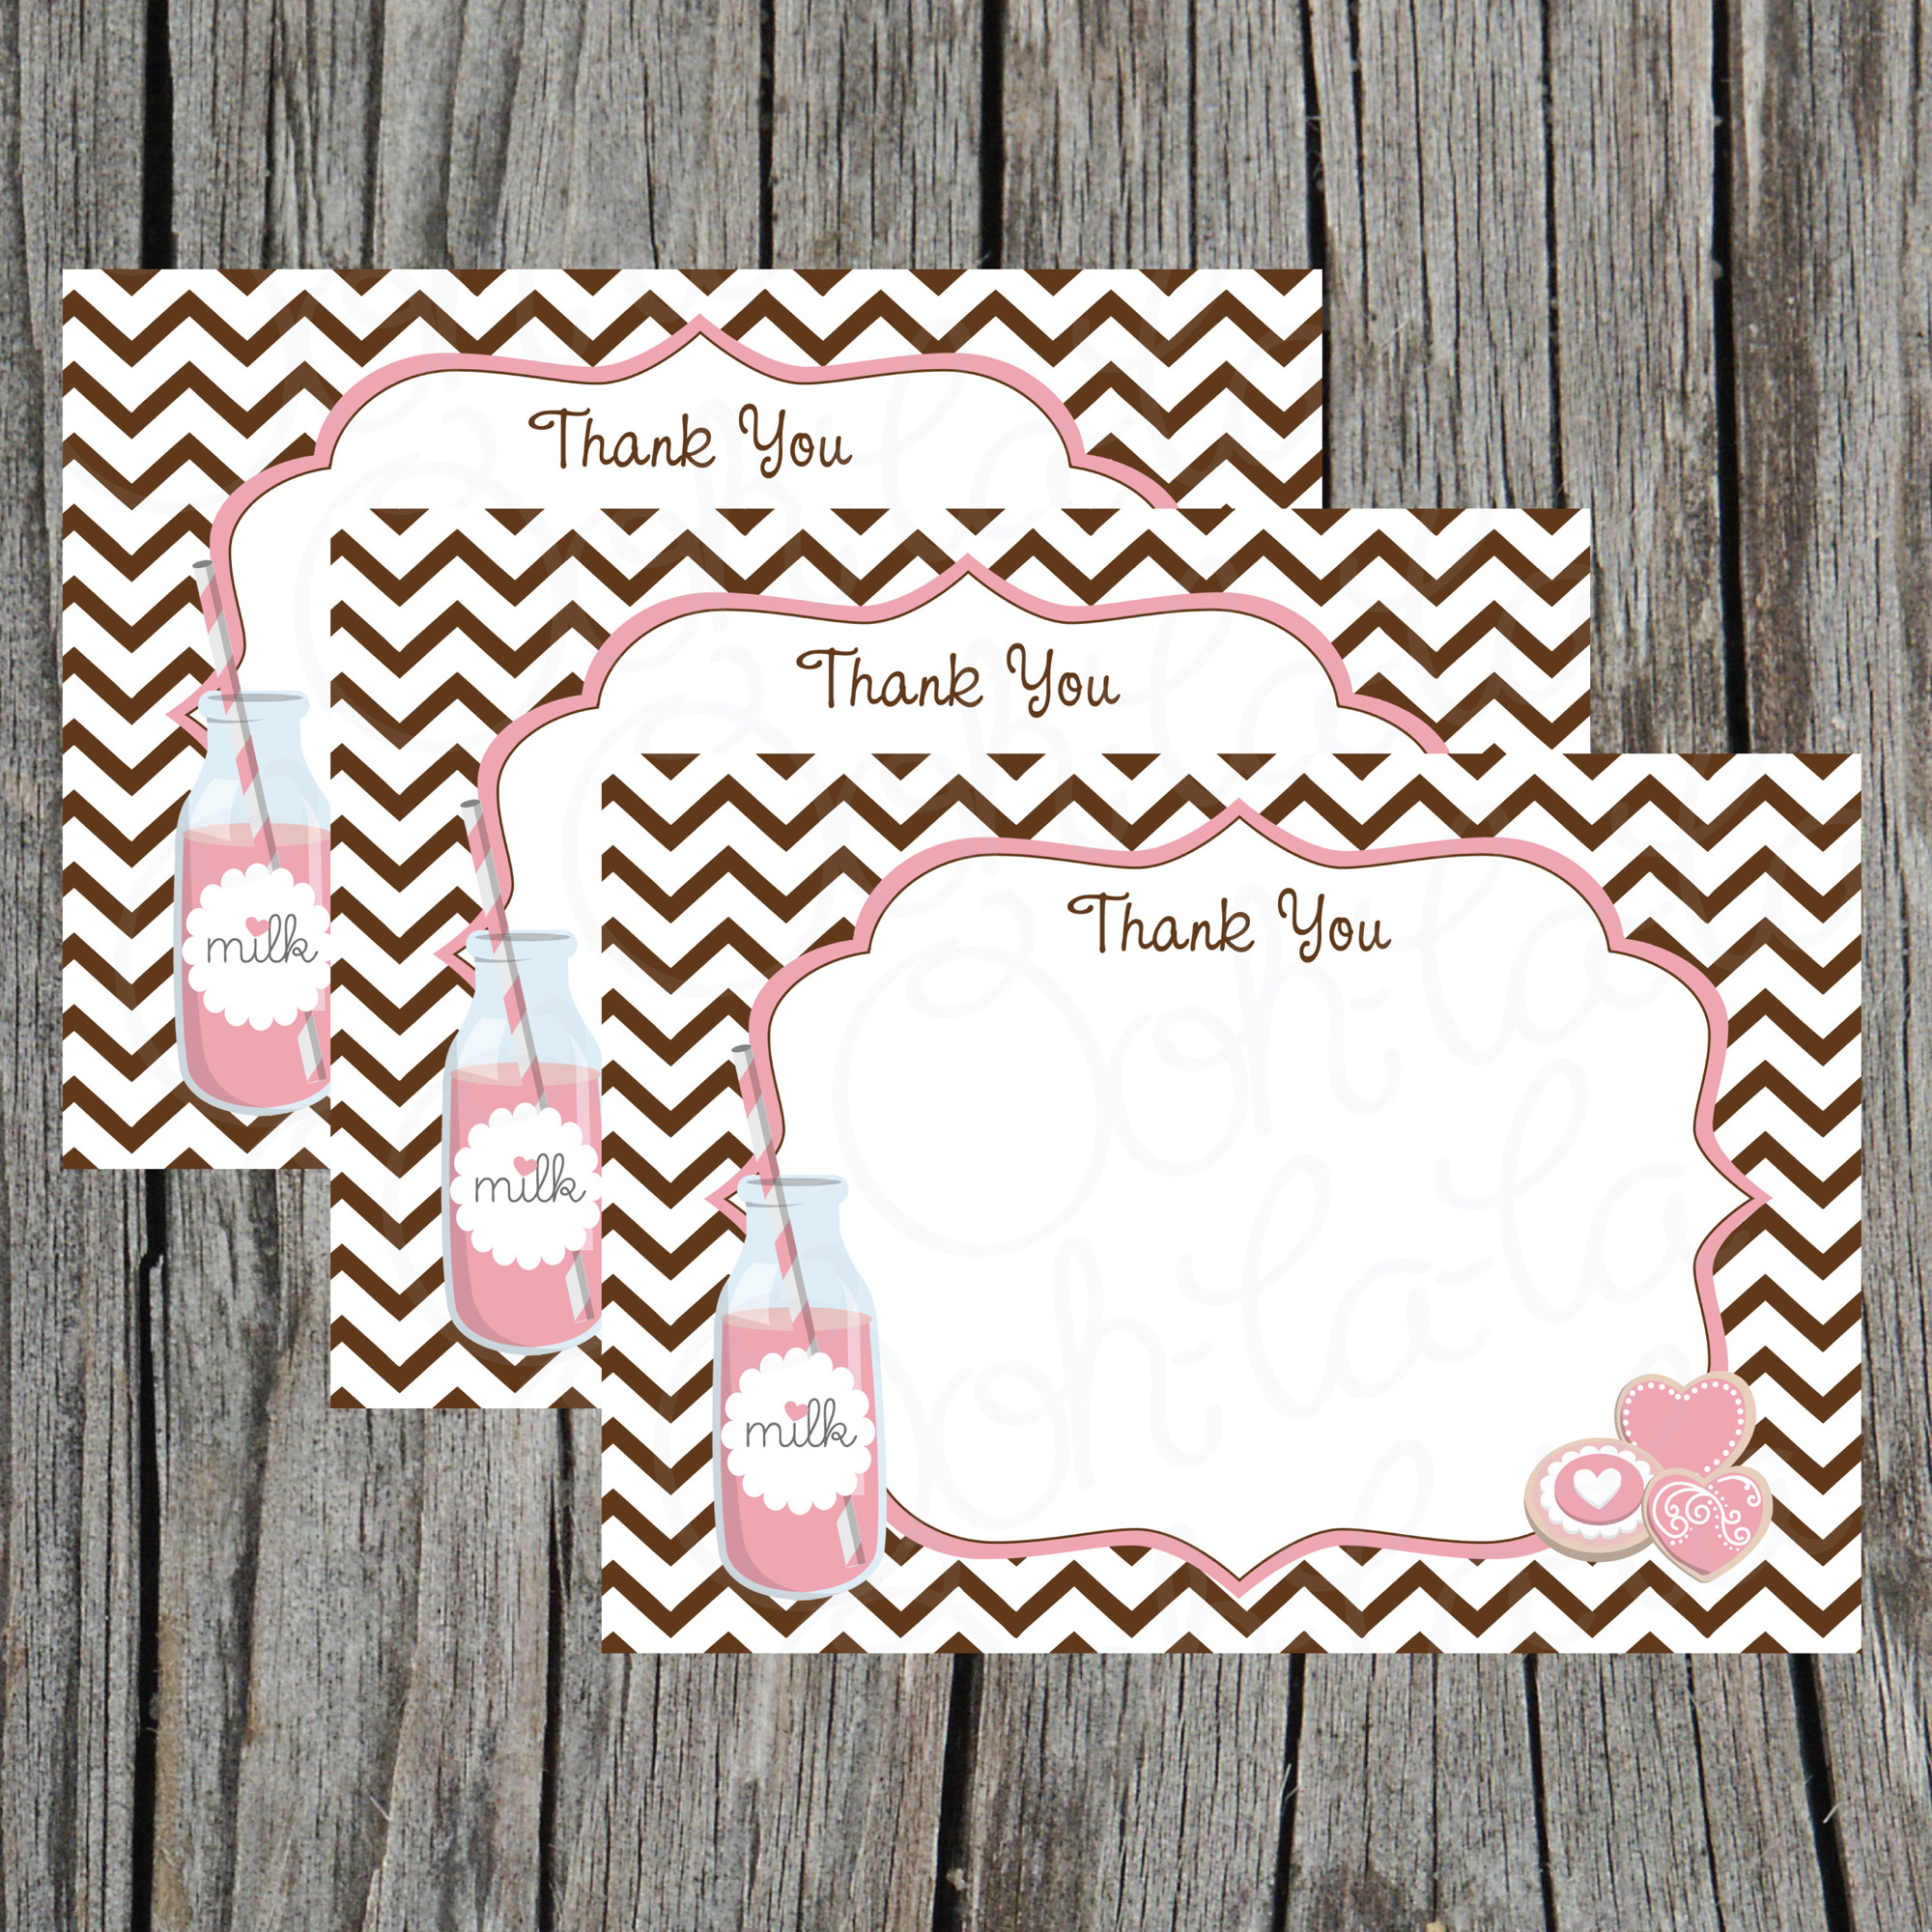 graphic about Printable Notecard named Lady Milk and Cookies Electronic Printable Notecard towards Ooh La La Printables